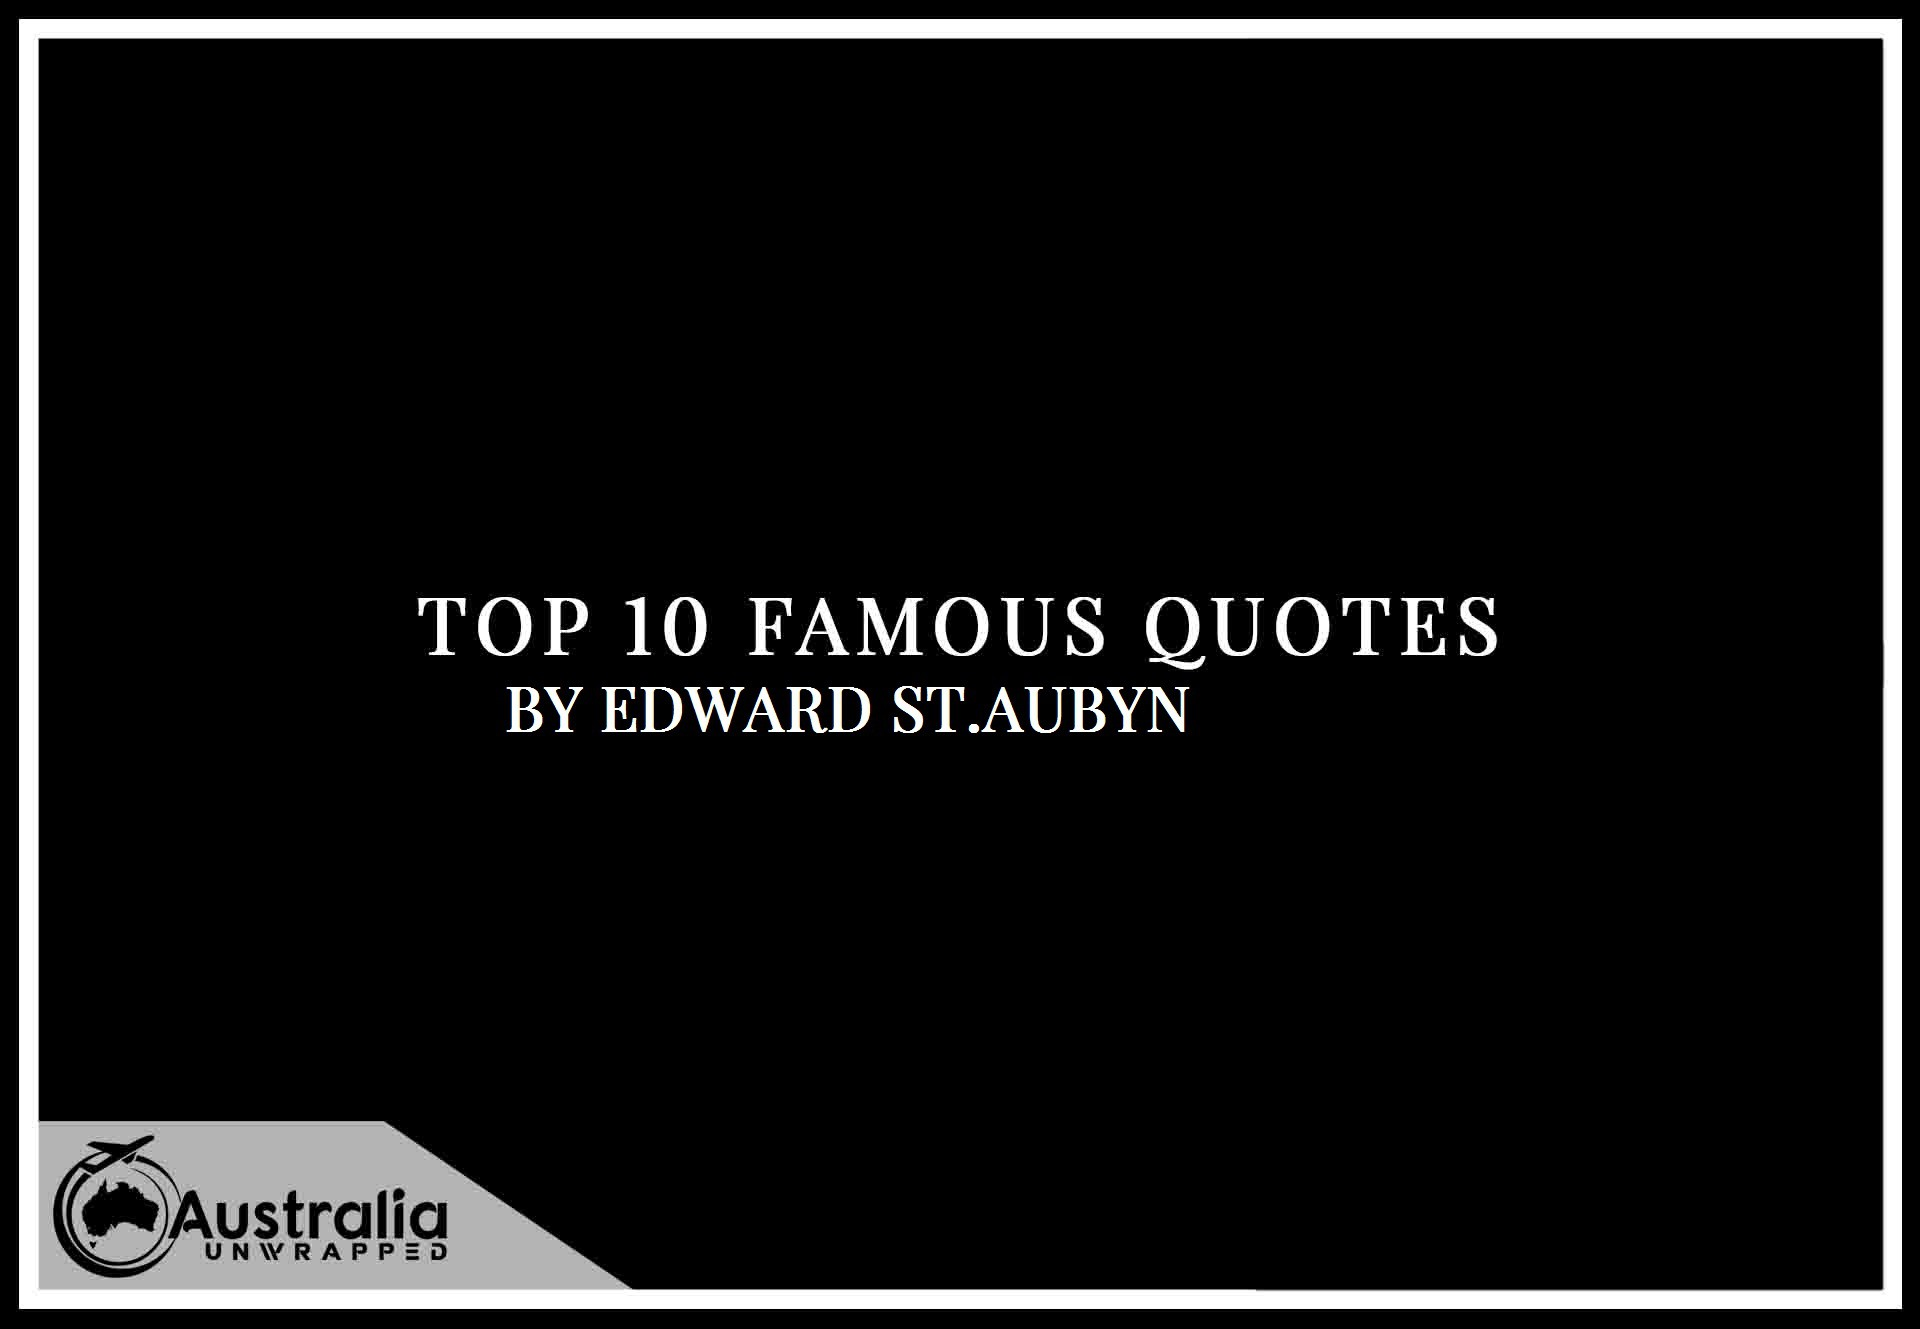 Edward St. Aubyn's Top 10 Popular and Famous Quotes